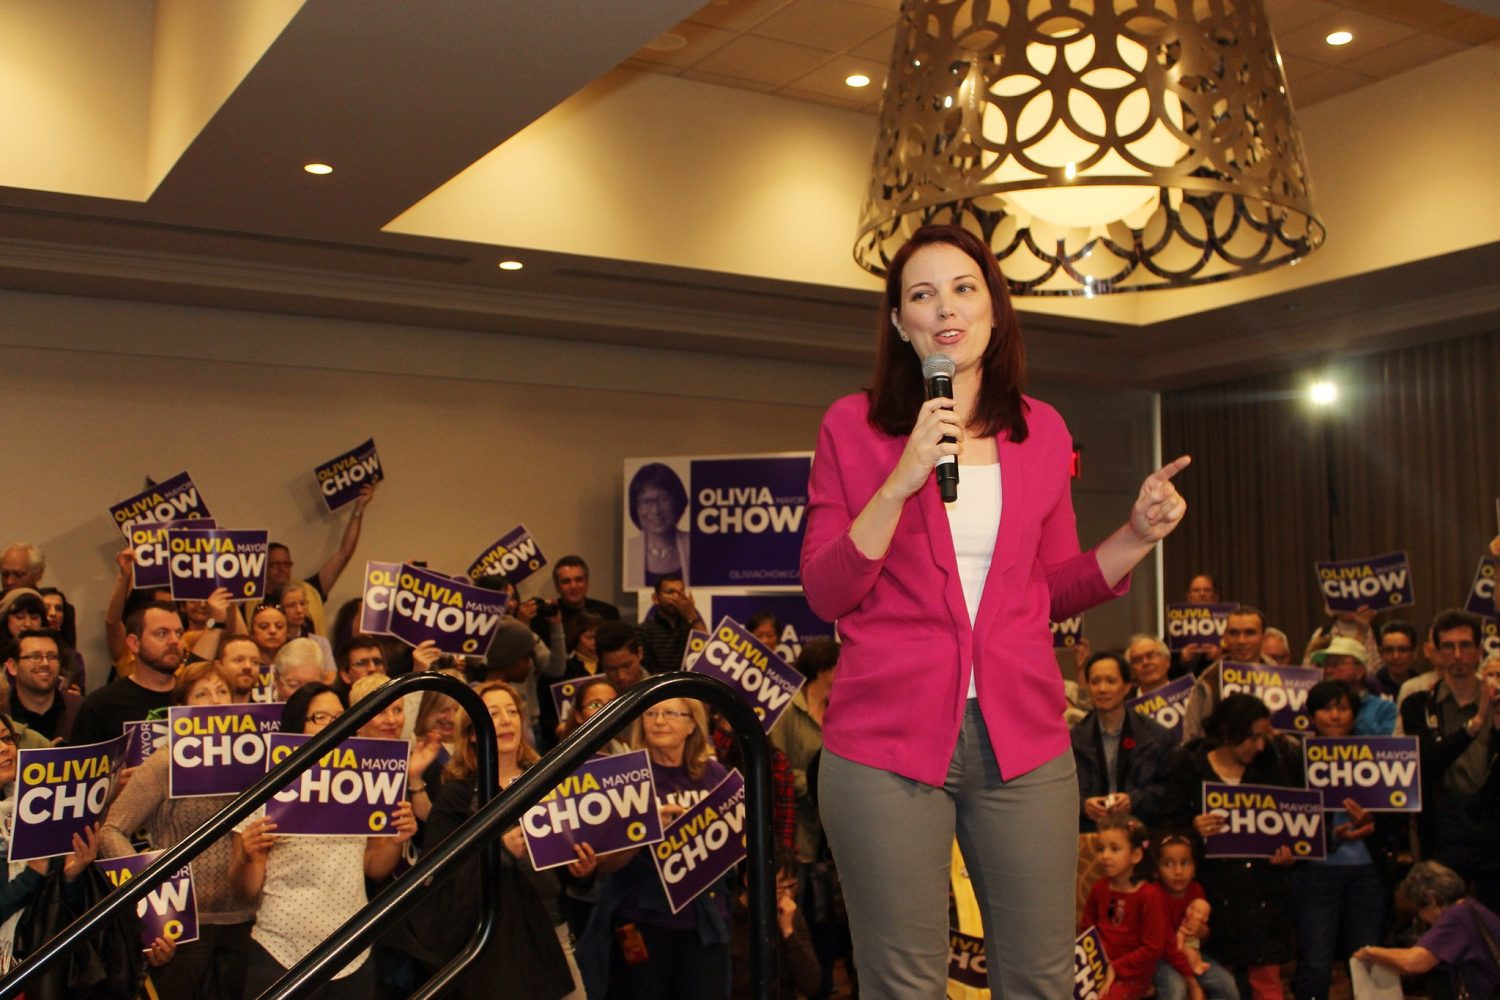 Jennifer Hollett, Olivia Chow's digital director during her 2014 mayoral campaign, speaks at a rally. Hollett is the new head of news and government at Twitter Canada. Photo courtesy Olivia Chow campaign/CC BY 2.0.